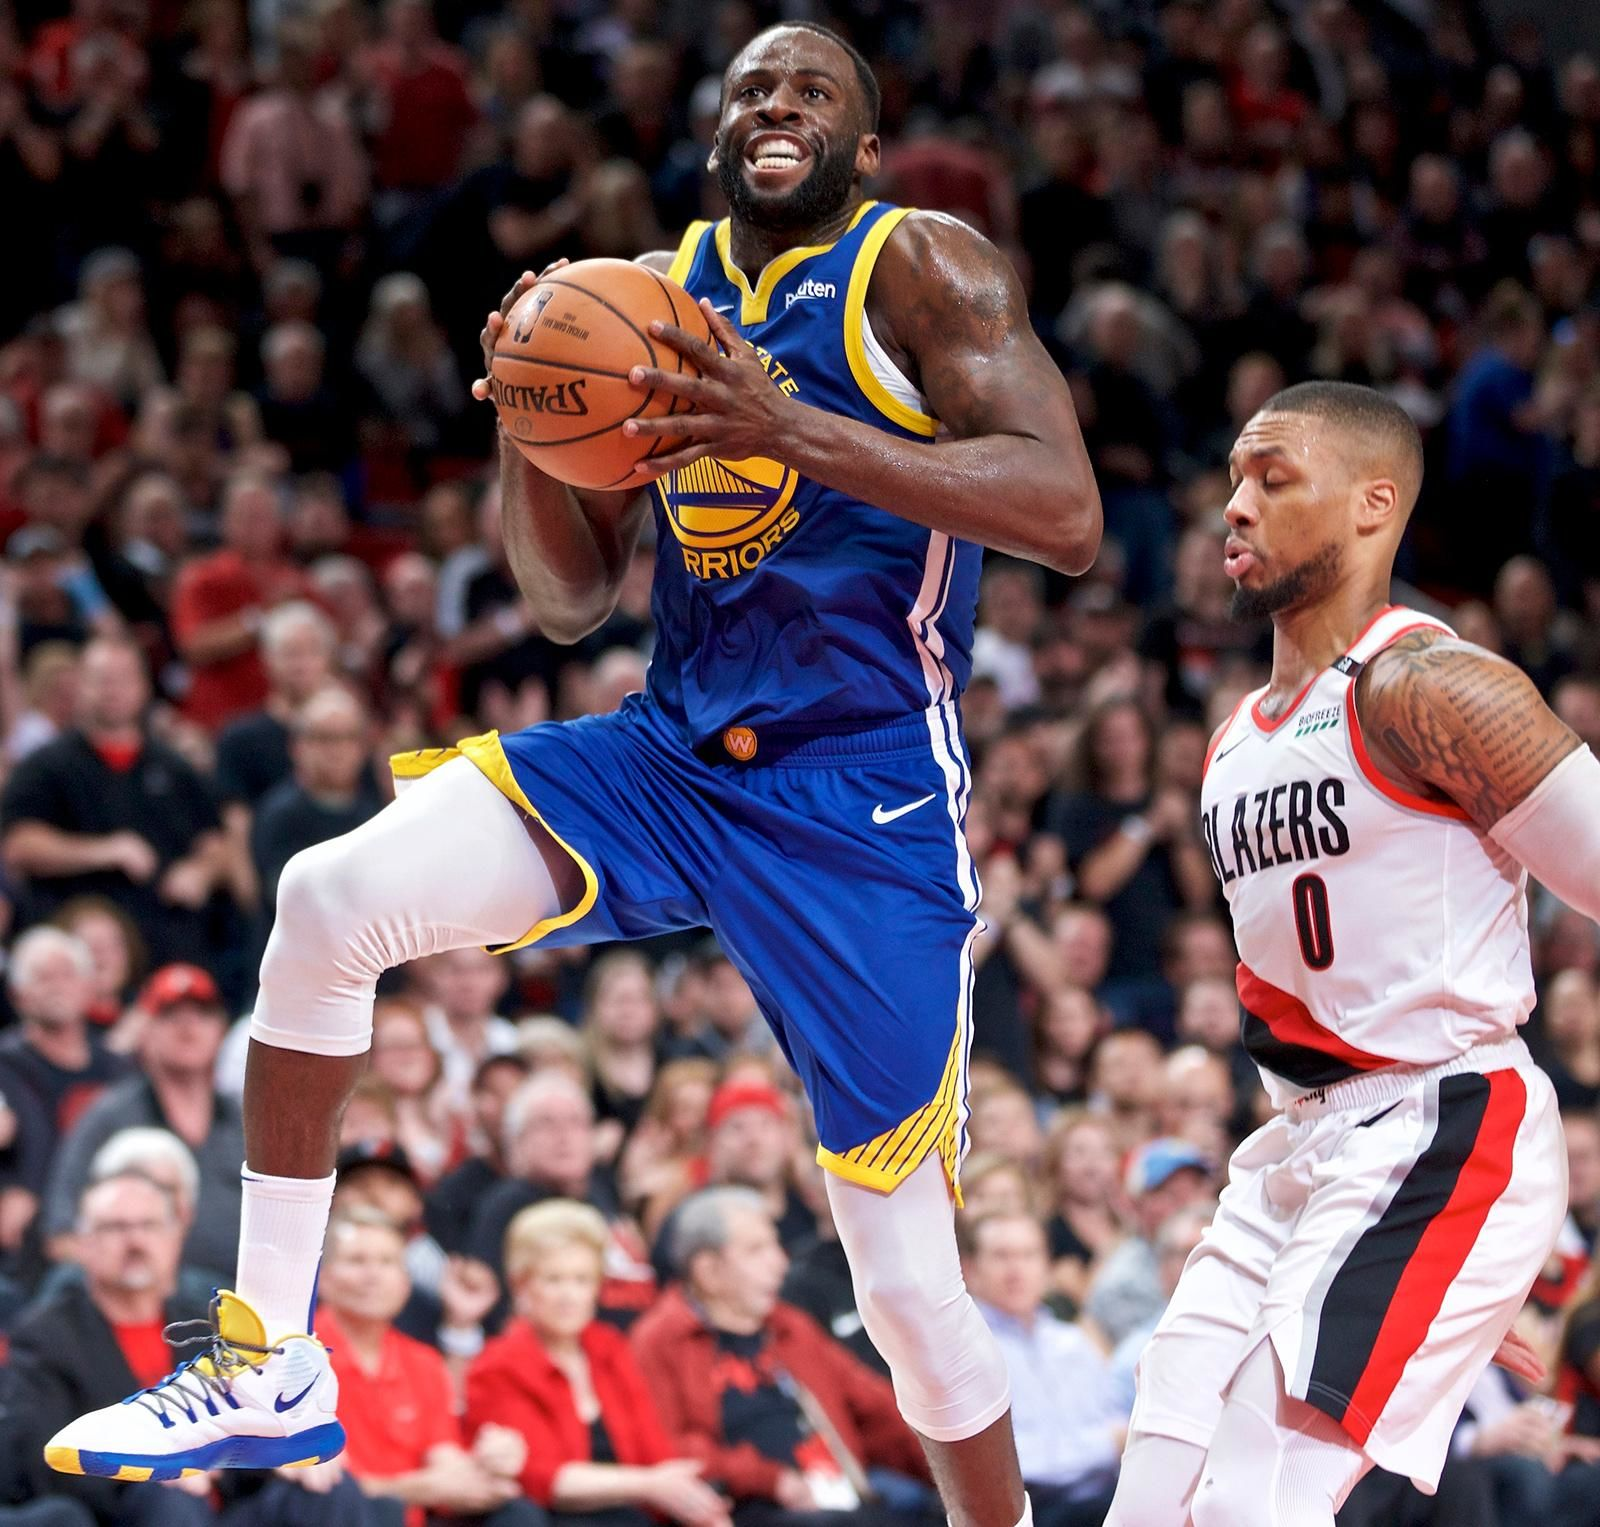 Golden State Warriors forward Draymond Green, left, prepares to shoot over Portland Trail Blazers guard Damian Lillard during the first half of Game 3 of the NBA basketball playoffs Western Conference finals Saturday, May 18, 2019, in Portland, Ore. (AP Photo/Craig Mitchelldyer)